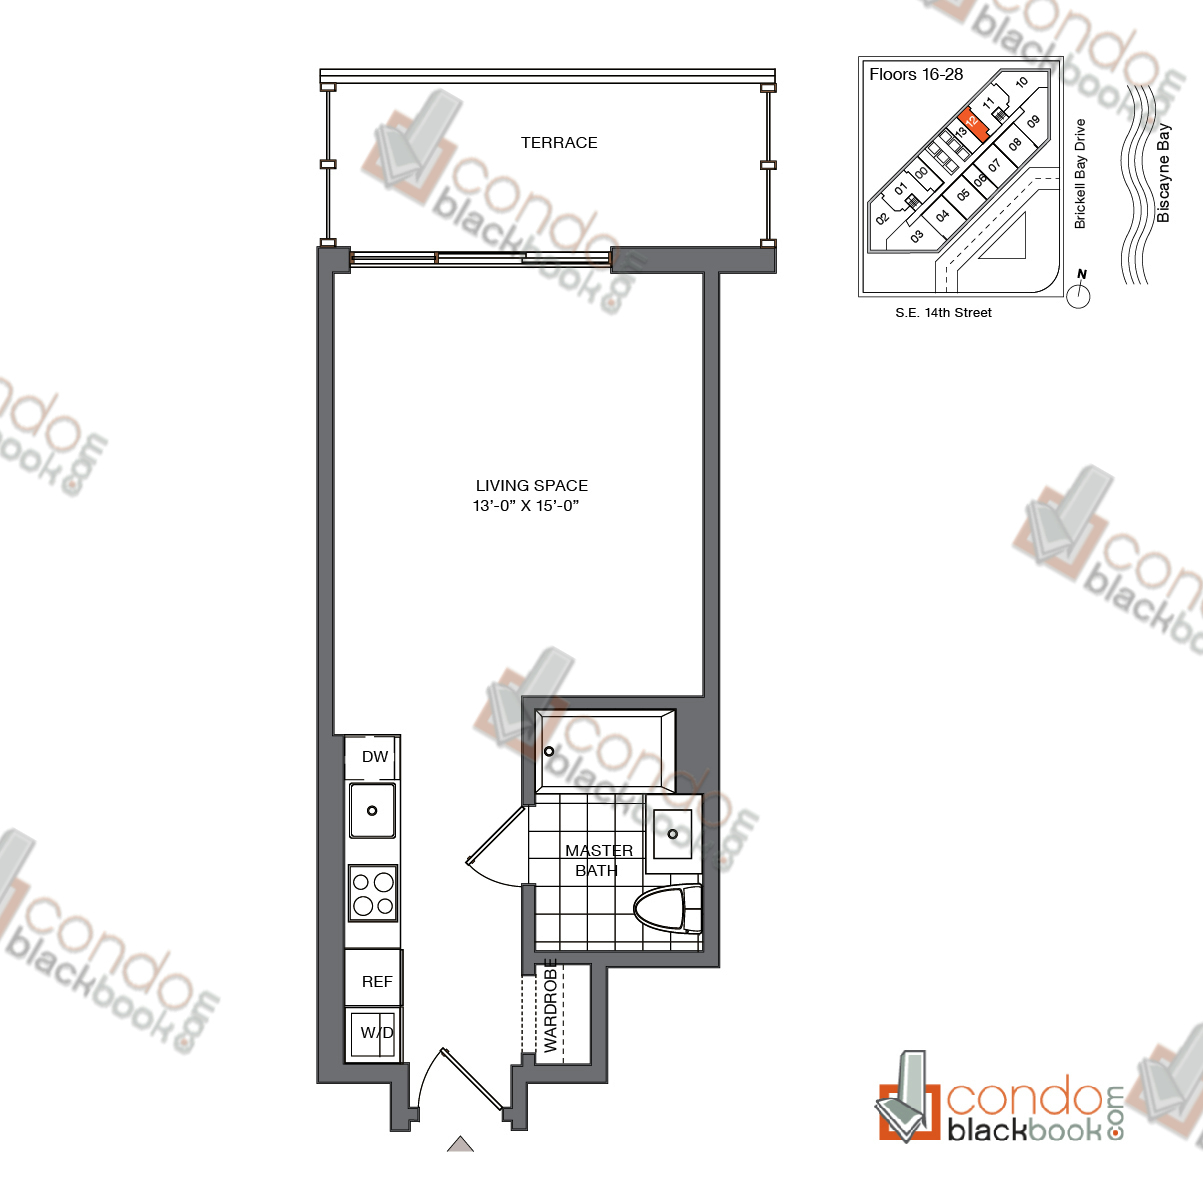 Floor plan for Brickell House Brickell Miami, model S3_16-28, line 12, 0/1 bedrooms, 400 sq ft